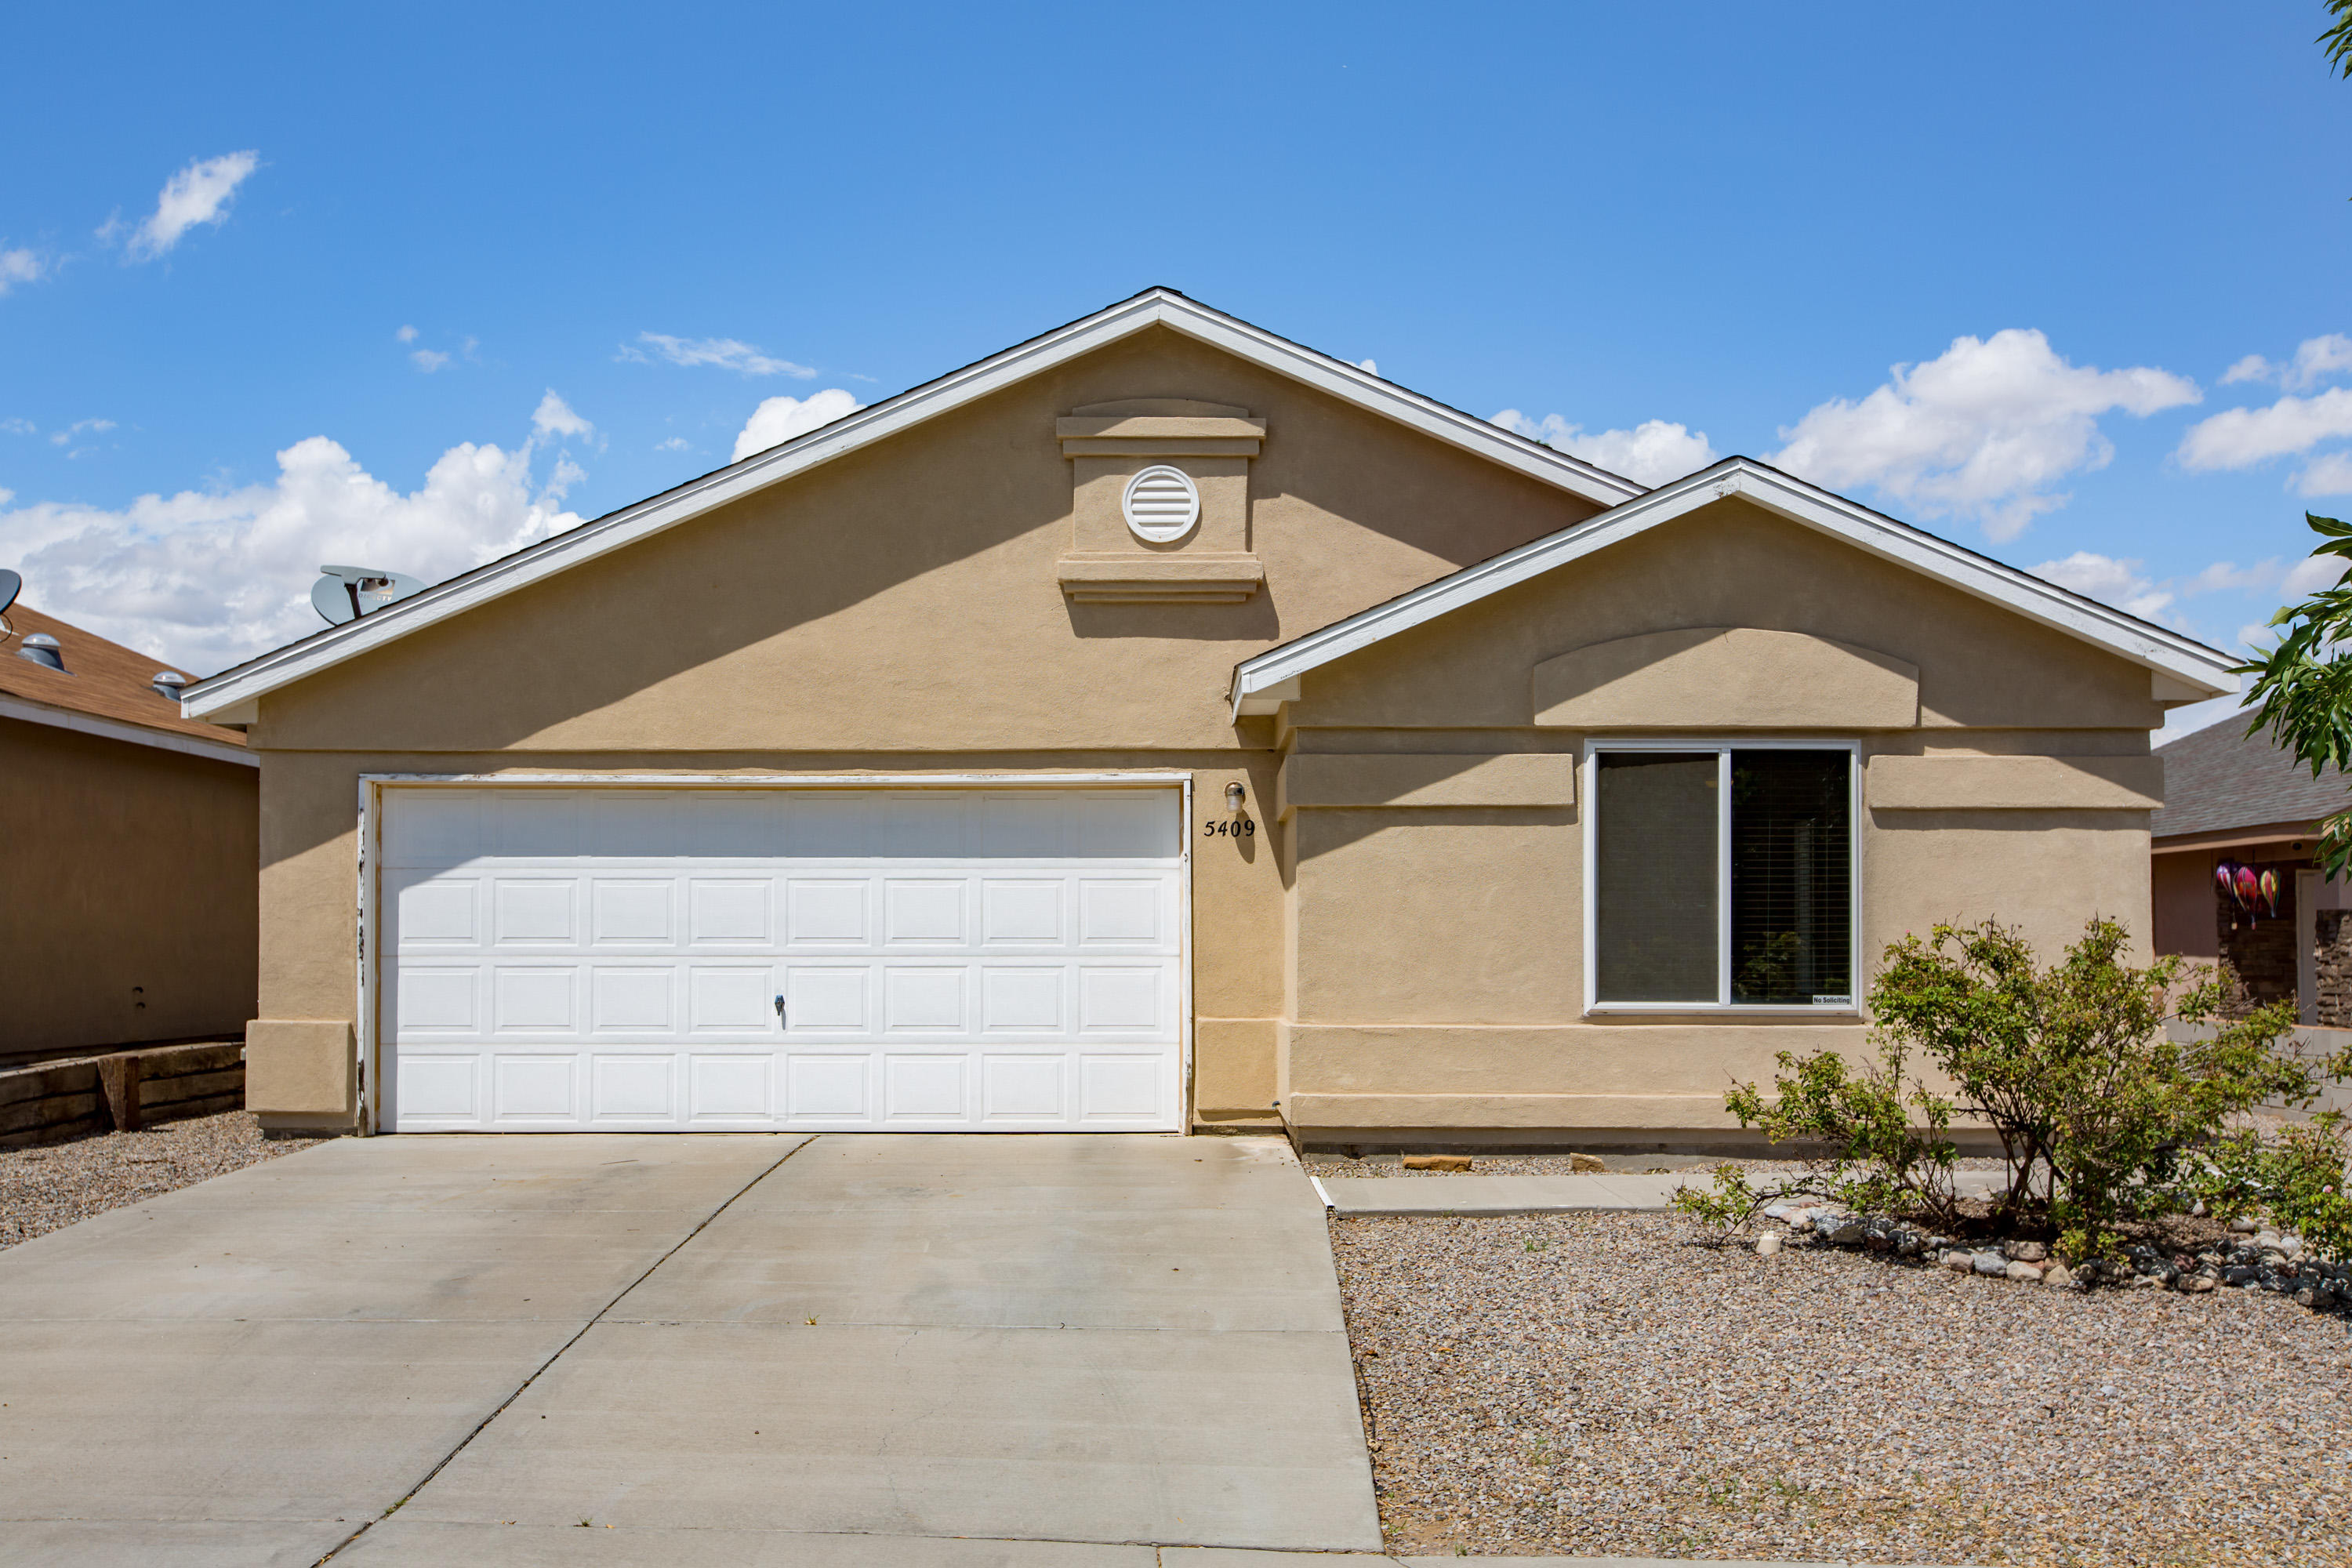 Come see this spacious 3 bedroom, 2 bathroom home equipped with stainless steel appliances, large living area, master walk in closet, master garden tub and standing shower, furnished garage, and a cozy back yard with a dog run, walled privacy and a terrace. Quick access to Paseo Del Norte, Rust Medical Center and to Rio Rancho.